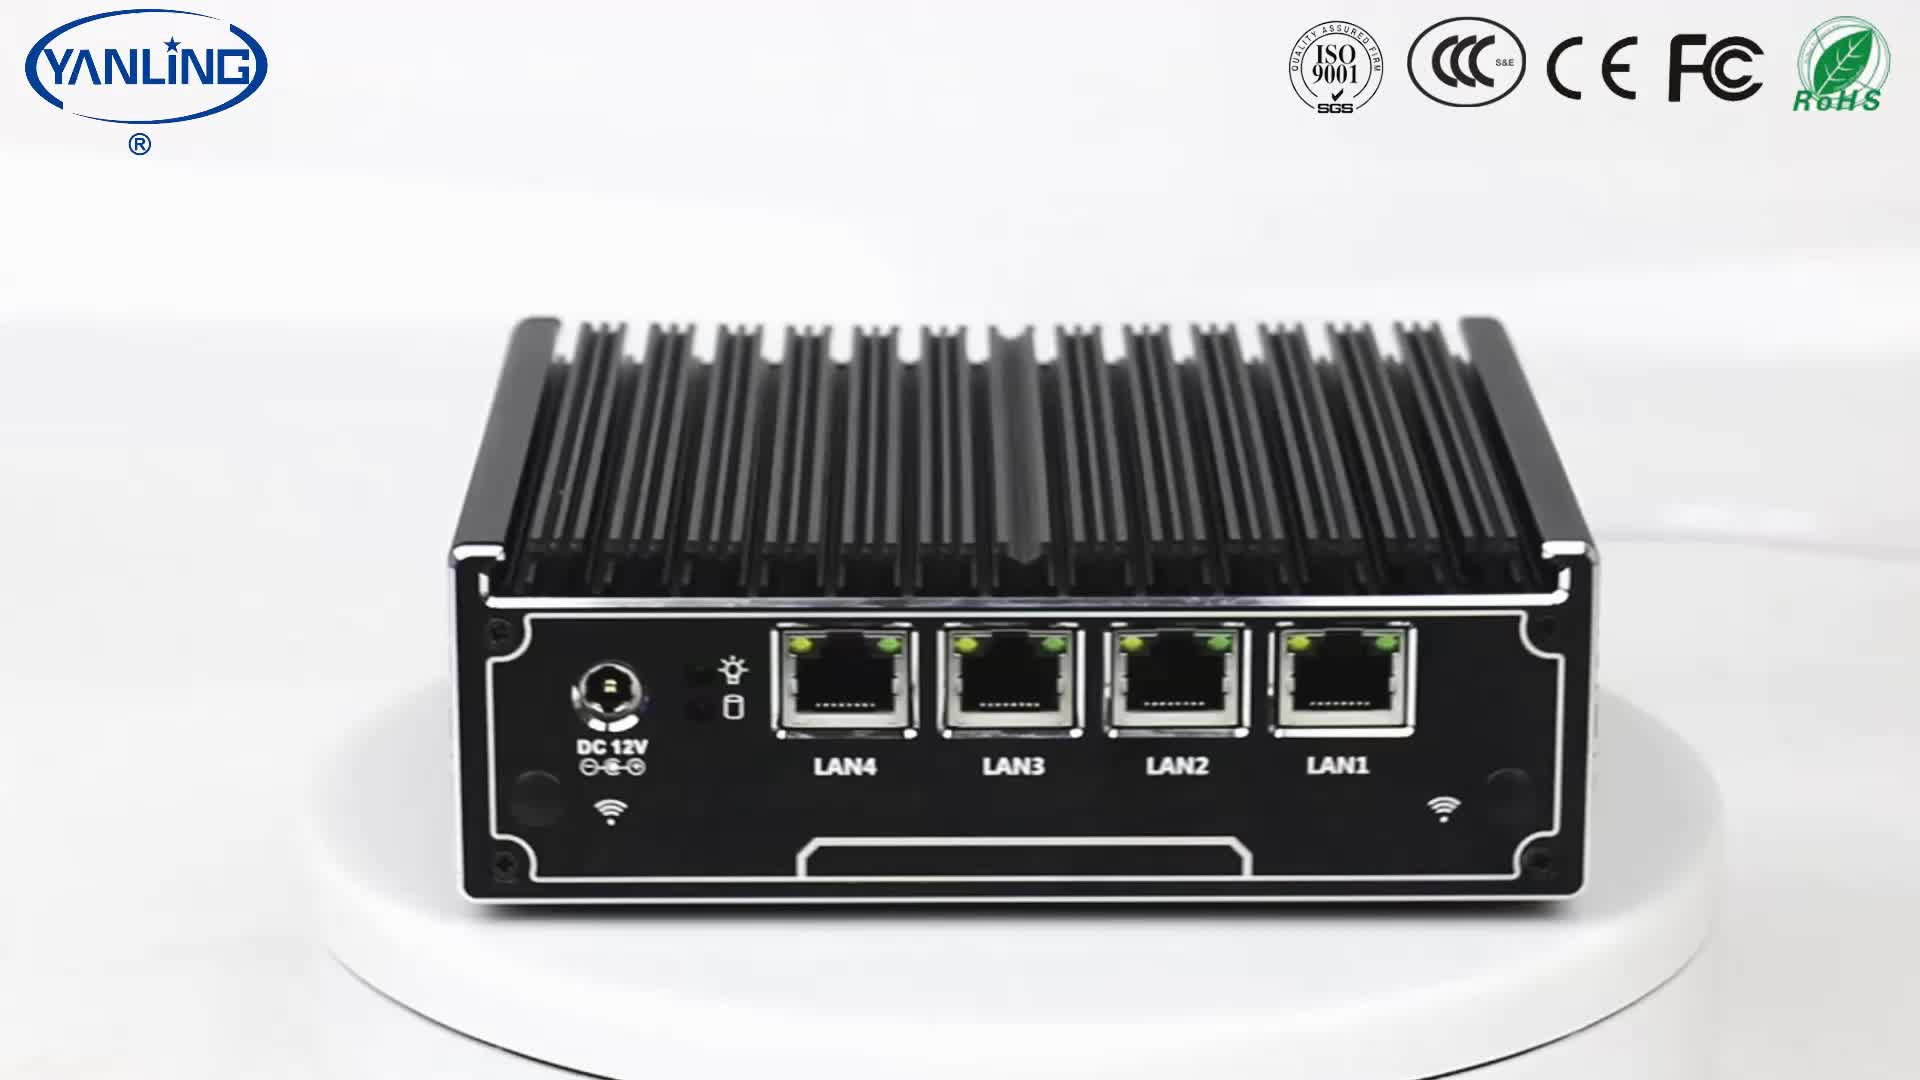 Small fanless linux computer intel J1900 quad core 4 gigabit lan dns server embedded x86 board mini pc router